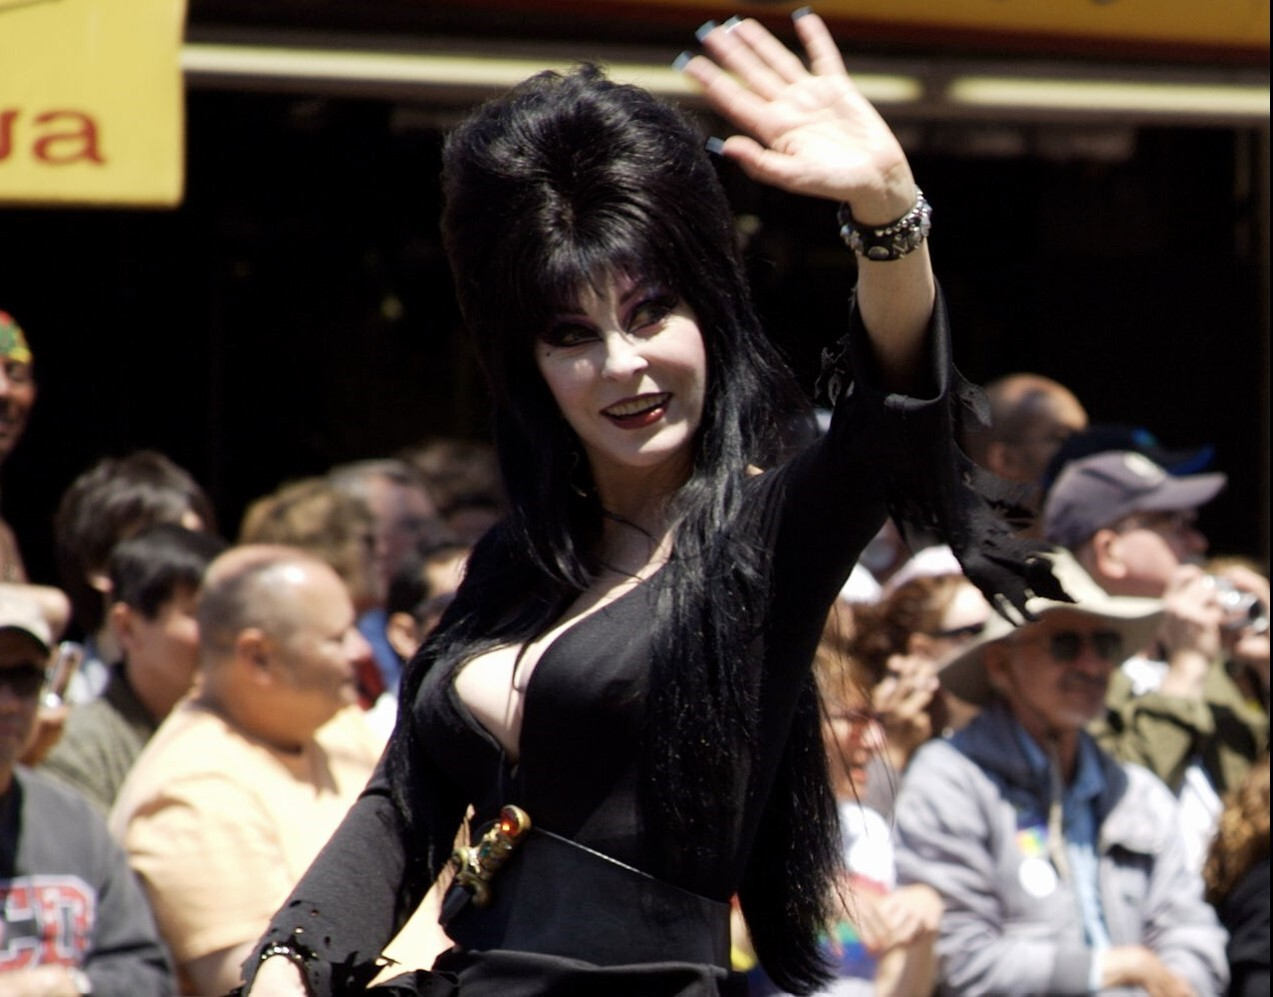 Elvira comes out & discusses 19-year relationship with a woman in new memoir